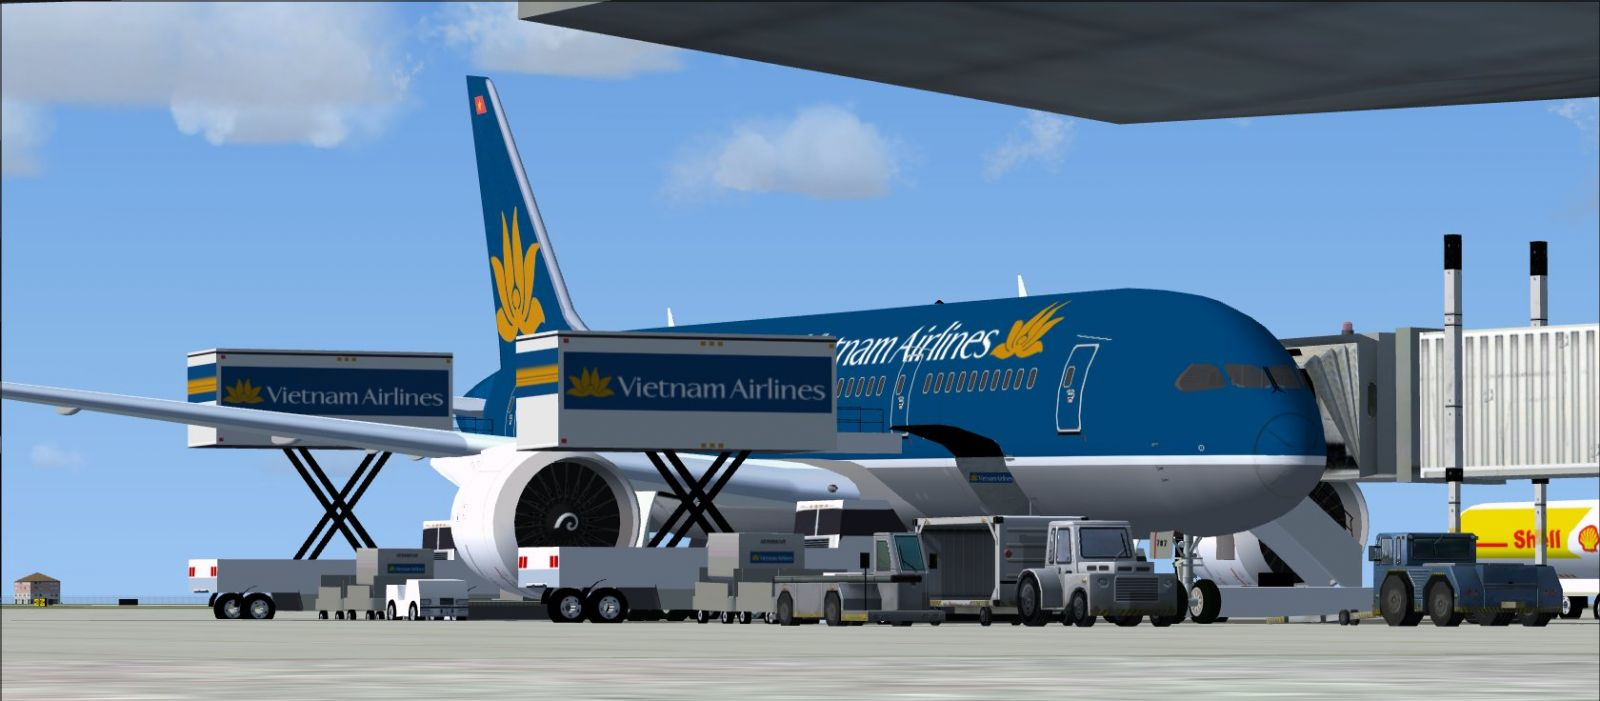 vietnam air cargo About vietnam airlines cargo vietnam airlines company limited, trading as vietnam airlines, is the national flag carrier of vietnamfounded in 1956 under the name vietnam civil aviation, the airline was established as a state enterprise in april 1989.